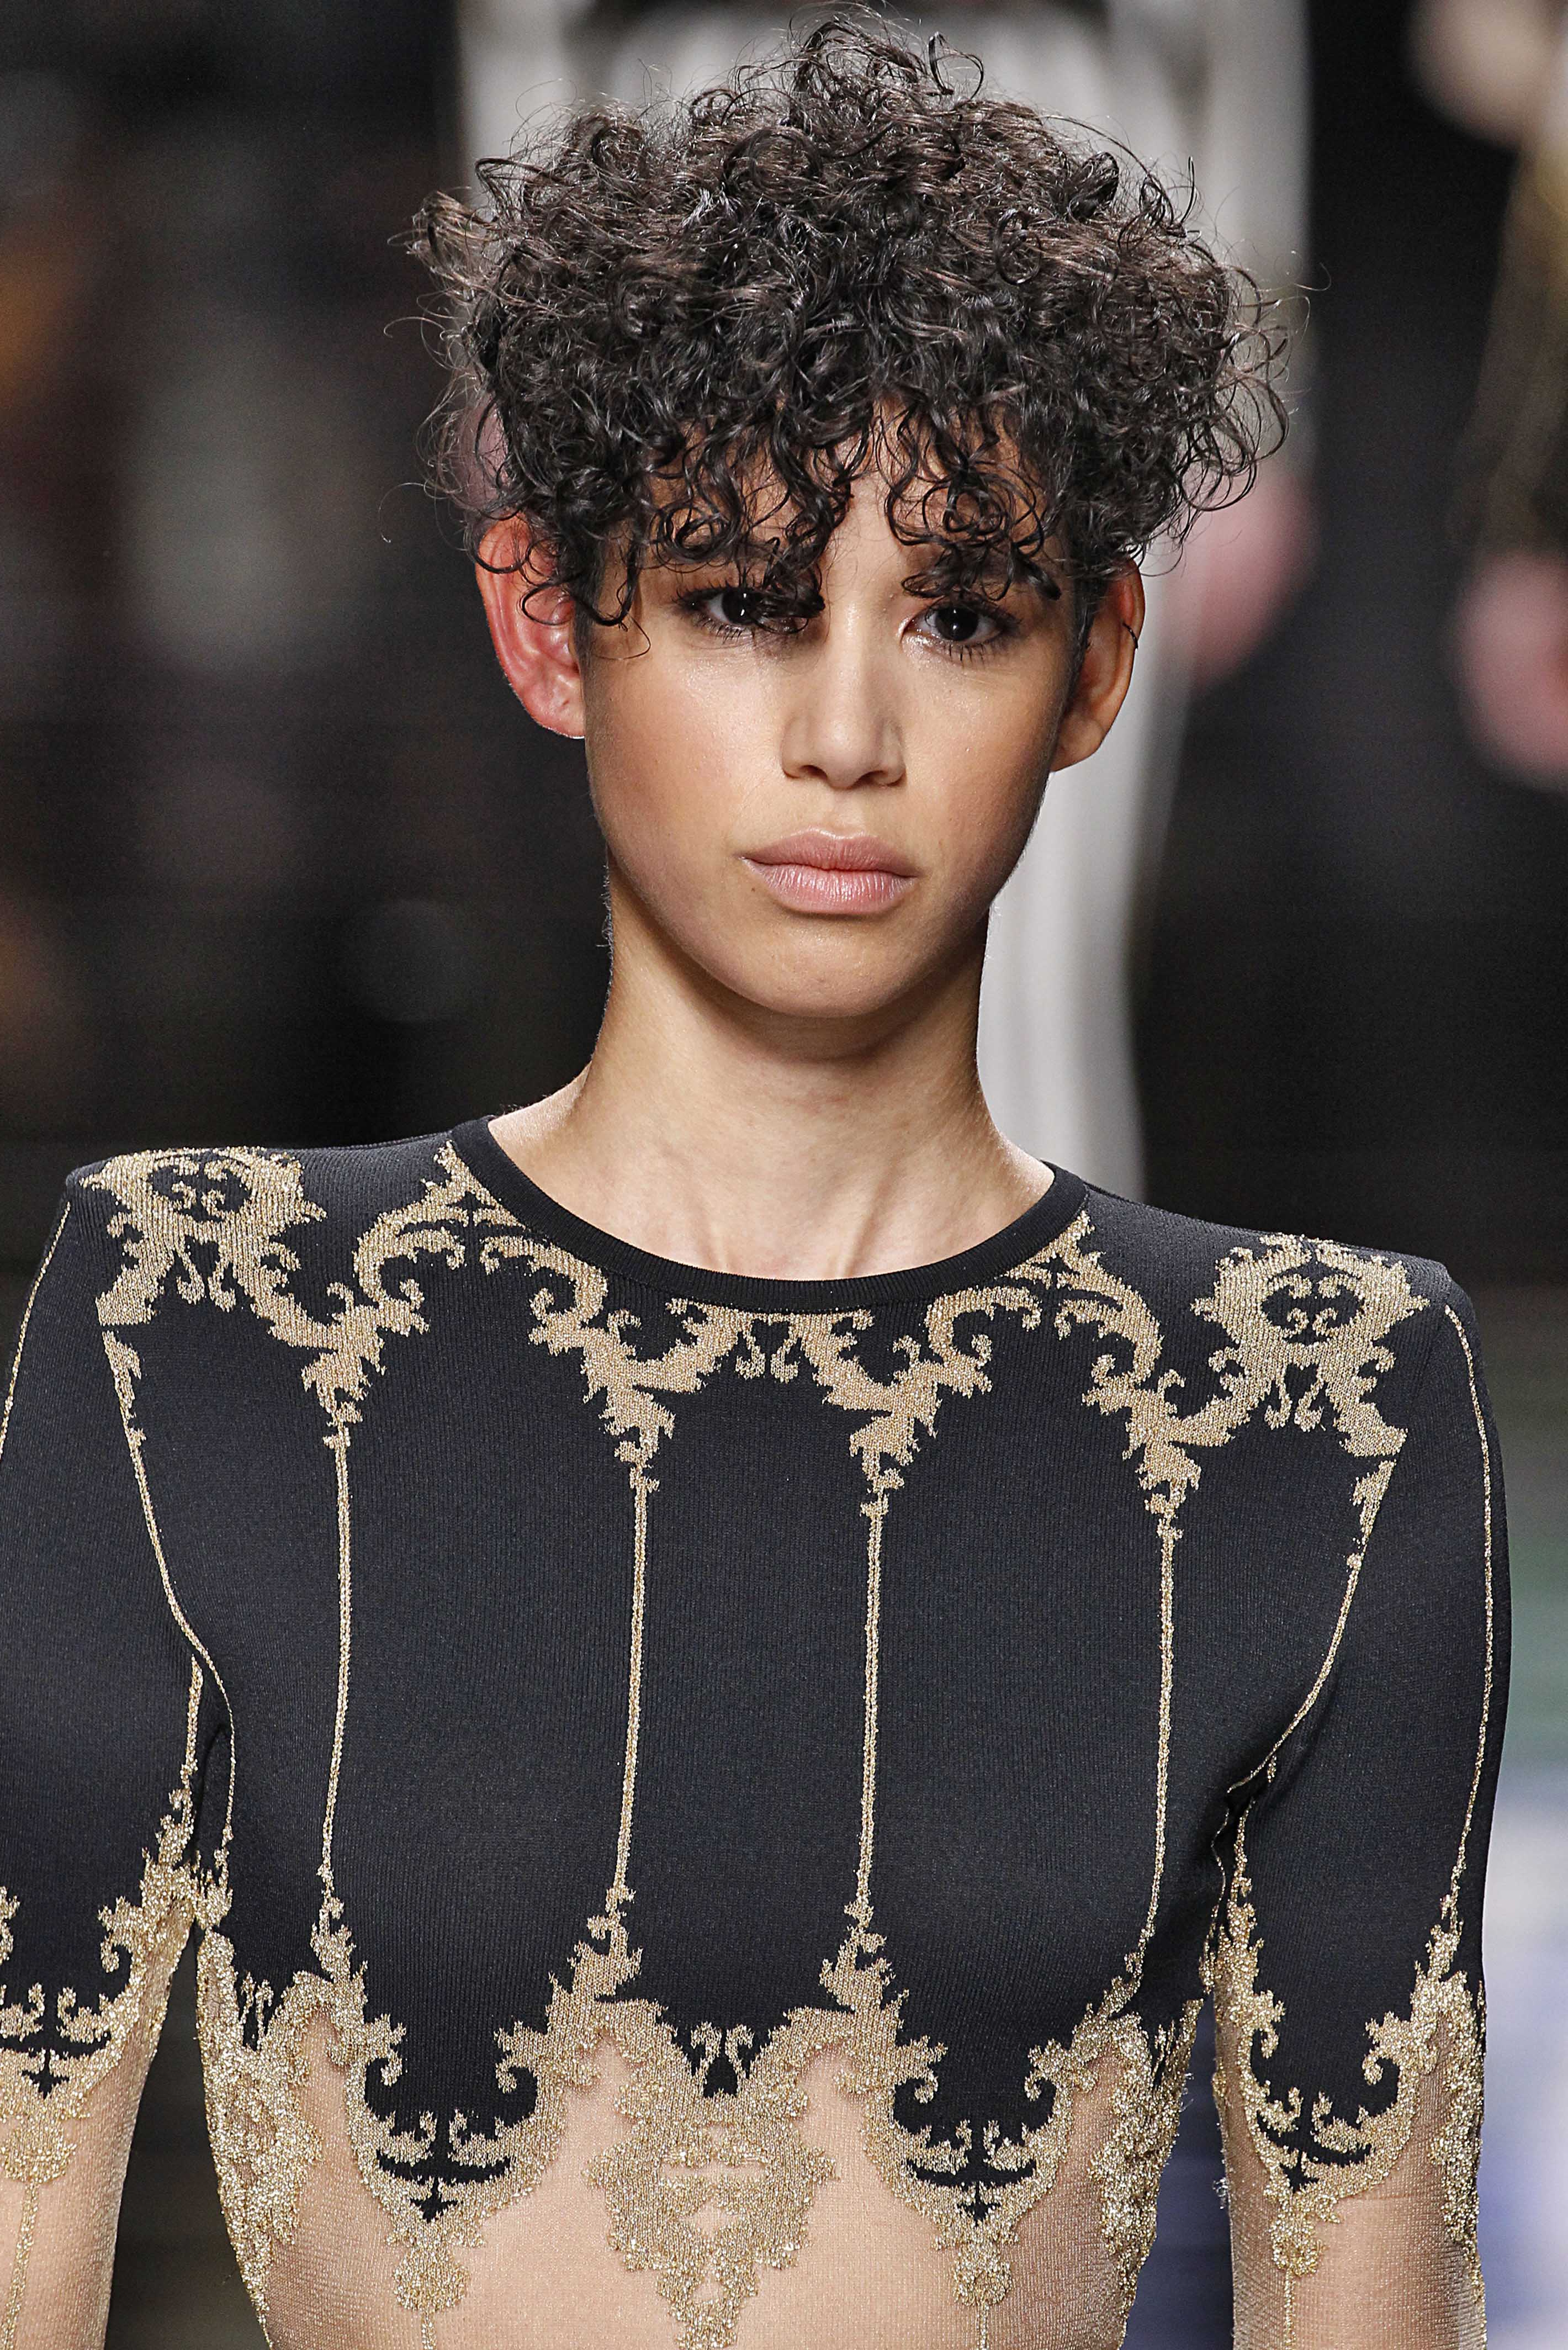 9 Short Edgy Haircuts To Inspire Your New Look (Plus A Tutorial!) Inside Edgy Short Curly Haircuts (View 12 of 25)